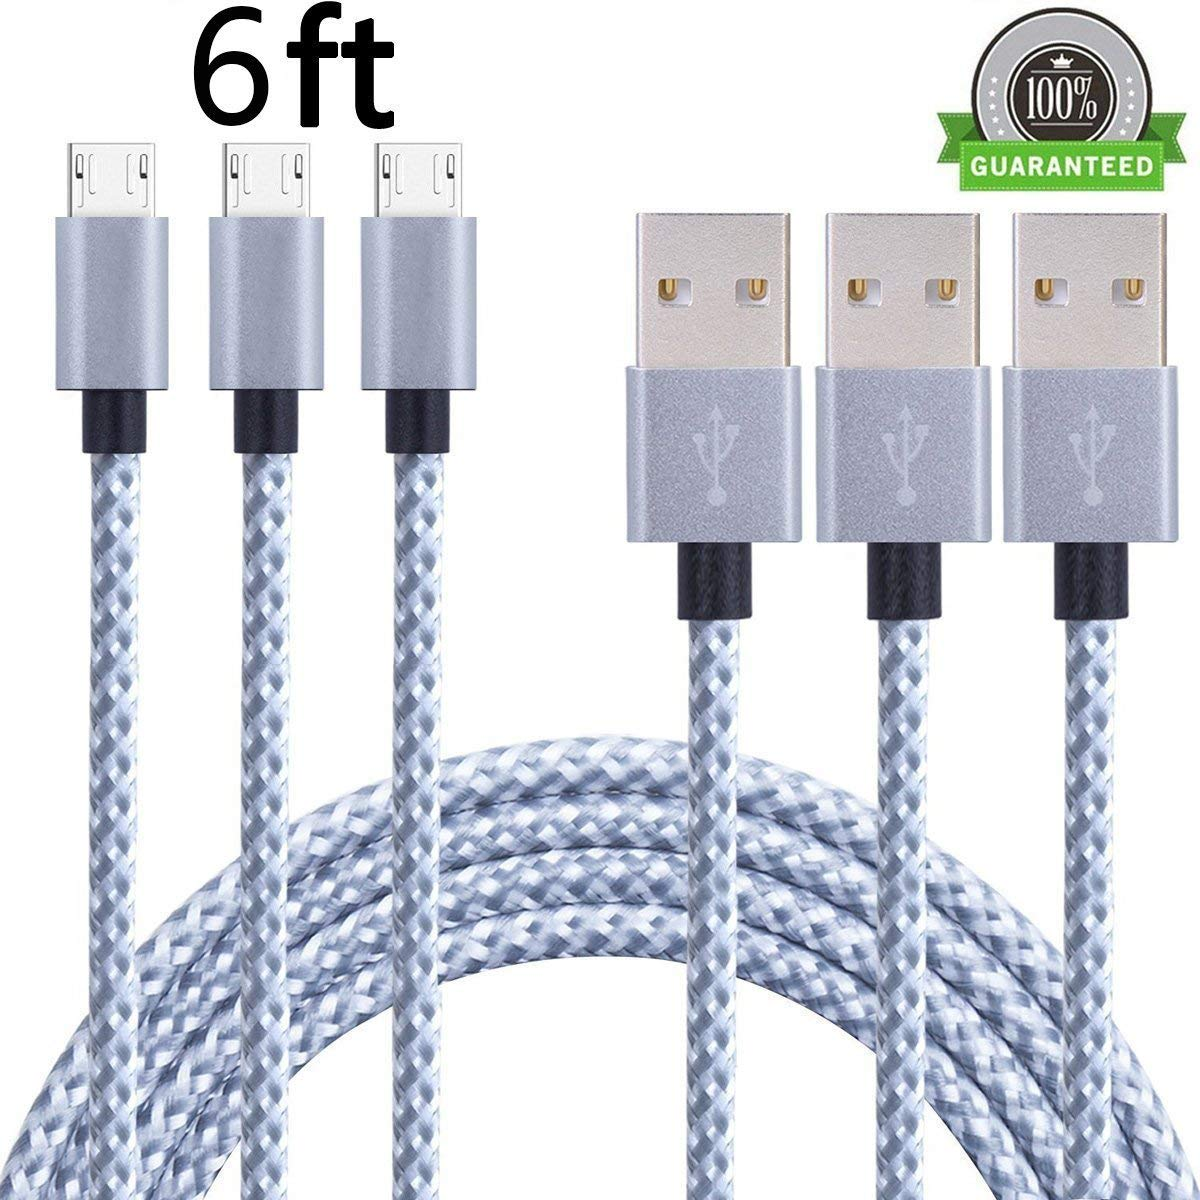 HTC and More Nokia Android 2Pcs Samsung Galaxy Asstar Universal Micro USB Cable 2.0 Nylon Braided 3ft Extra Long USB Charging Cable for Android Motorola 2Pcs 3ft